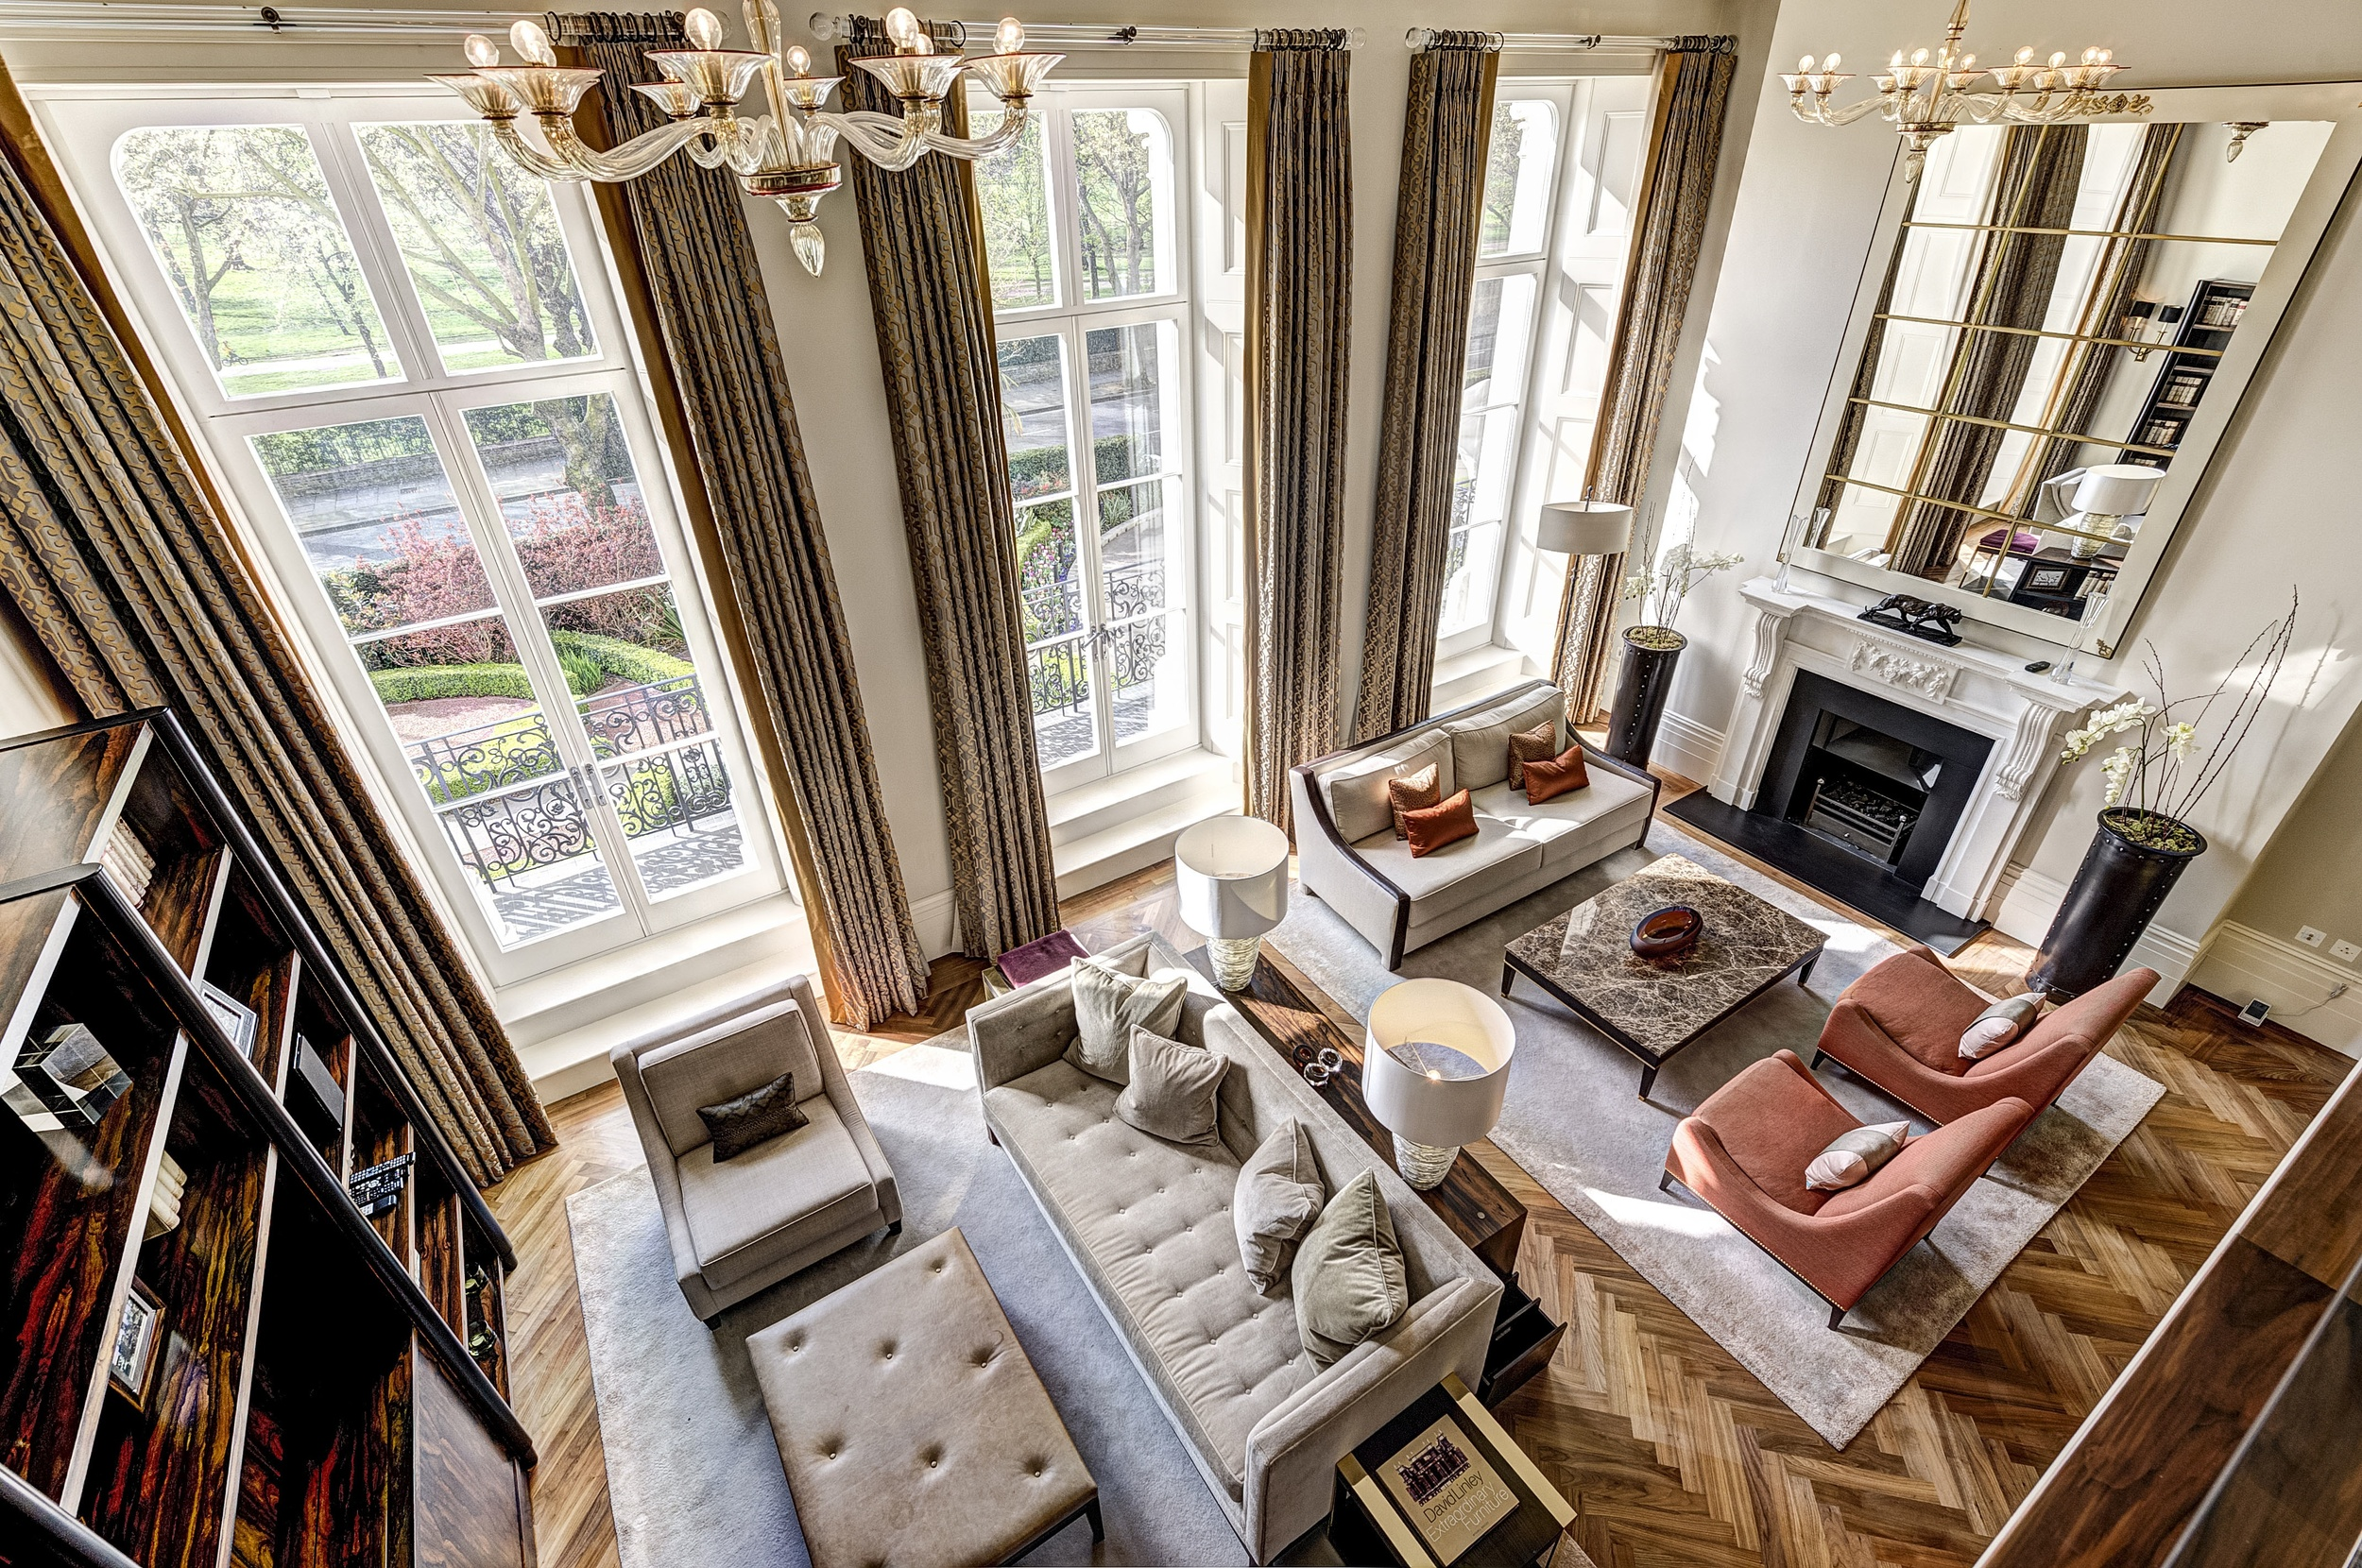 The Lancasters in London offers residences in a secure gated environment